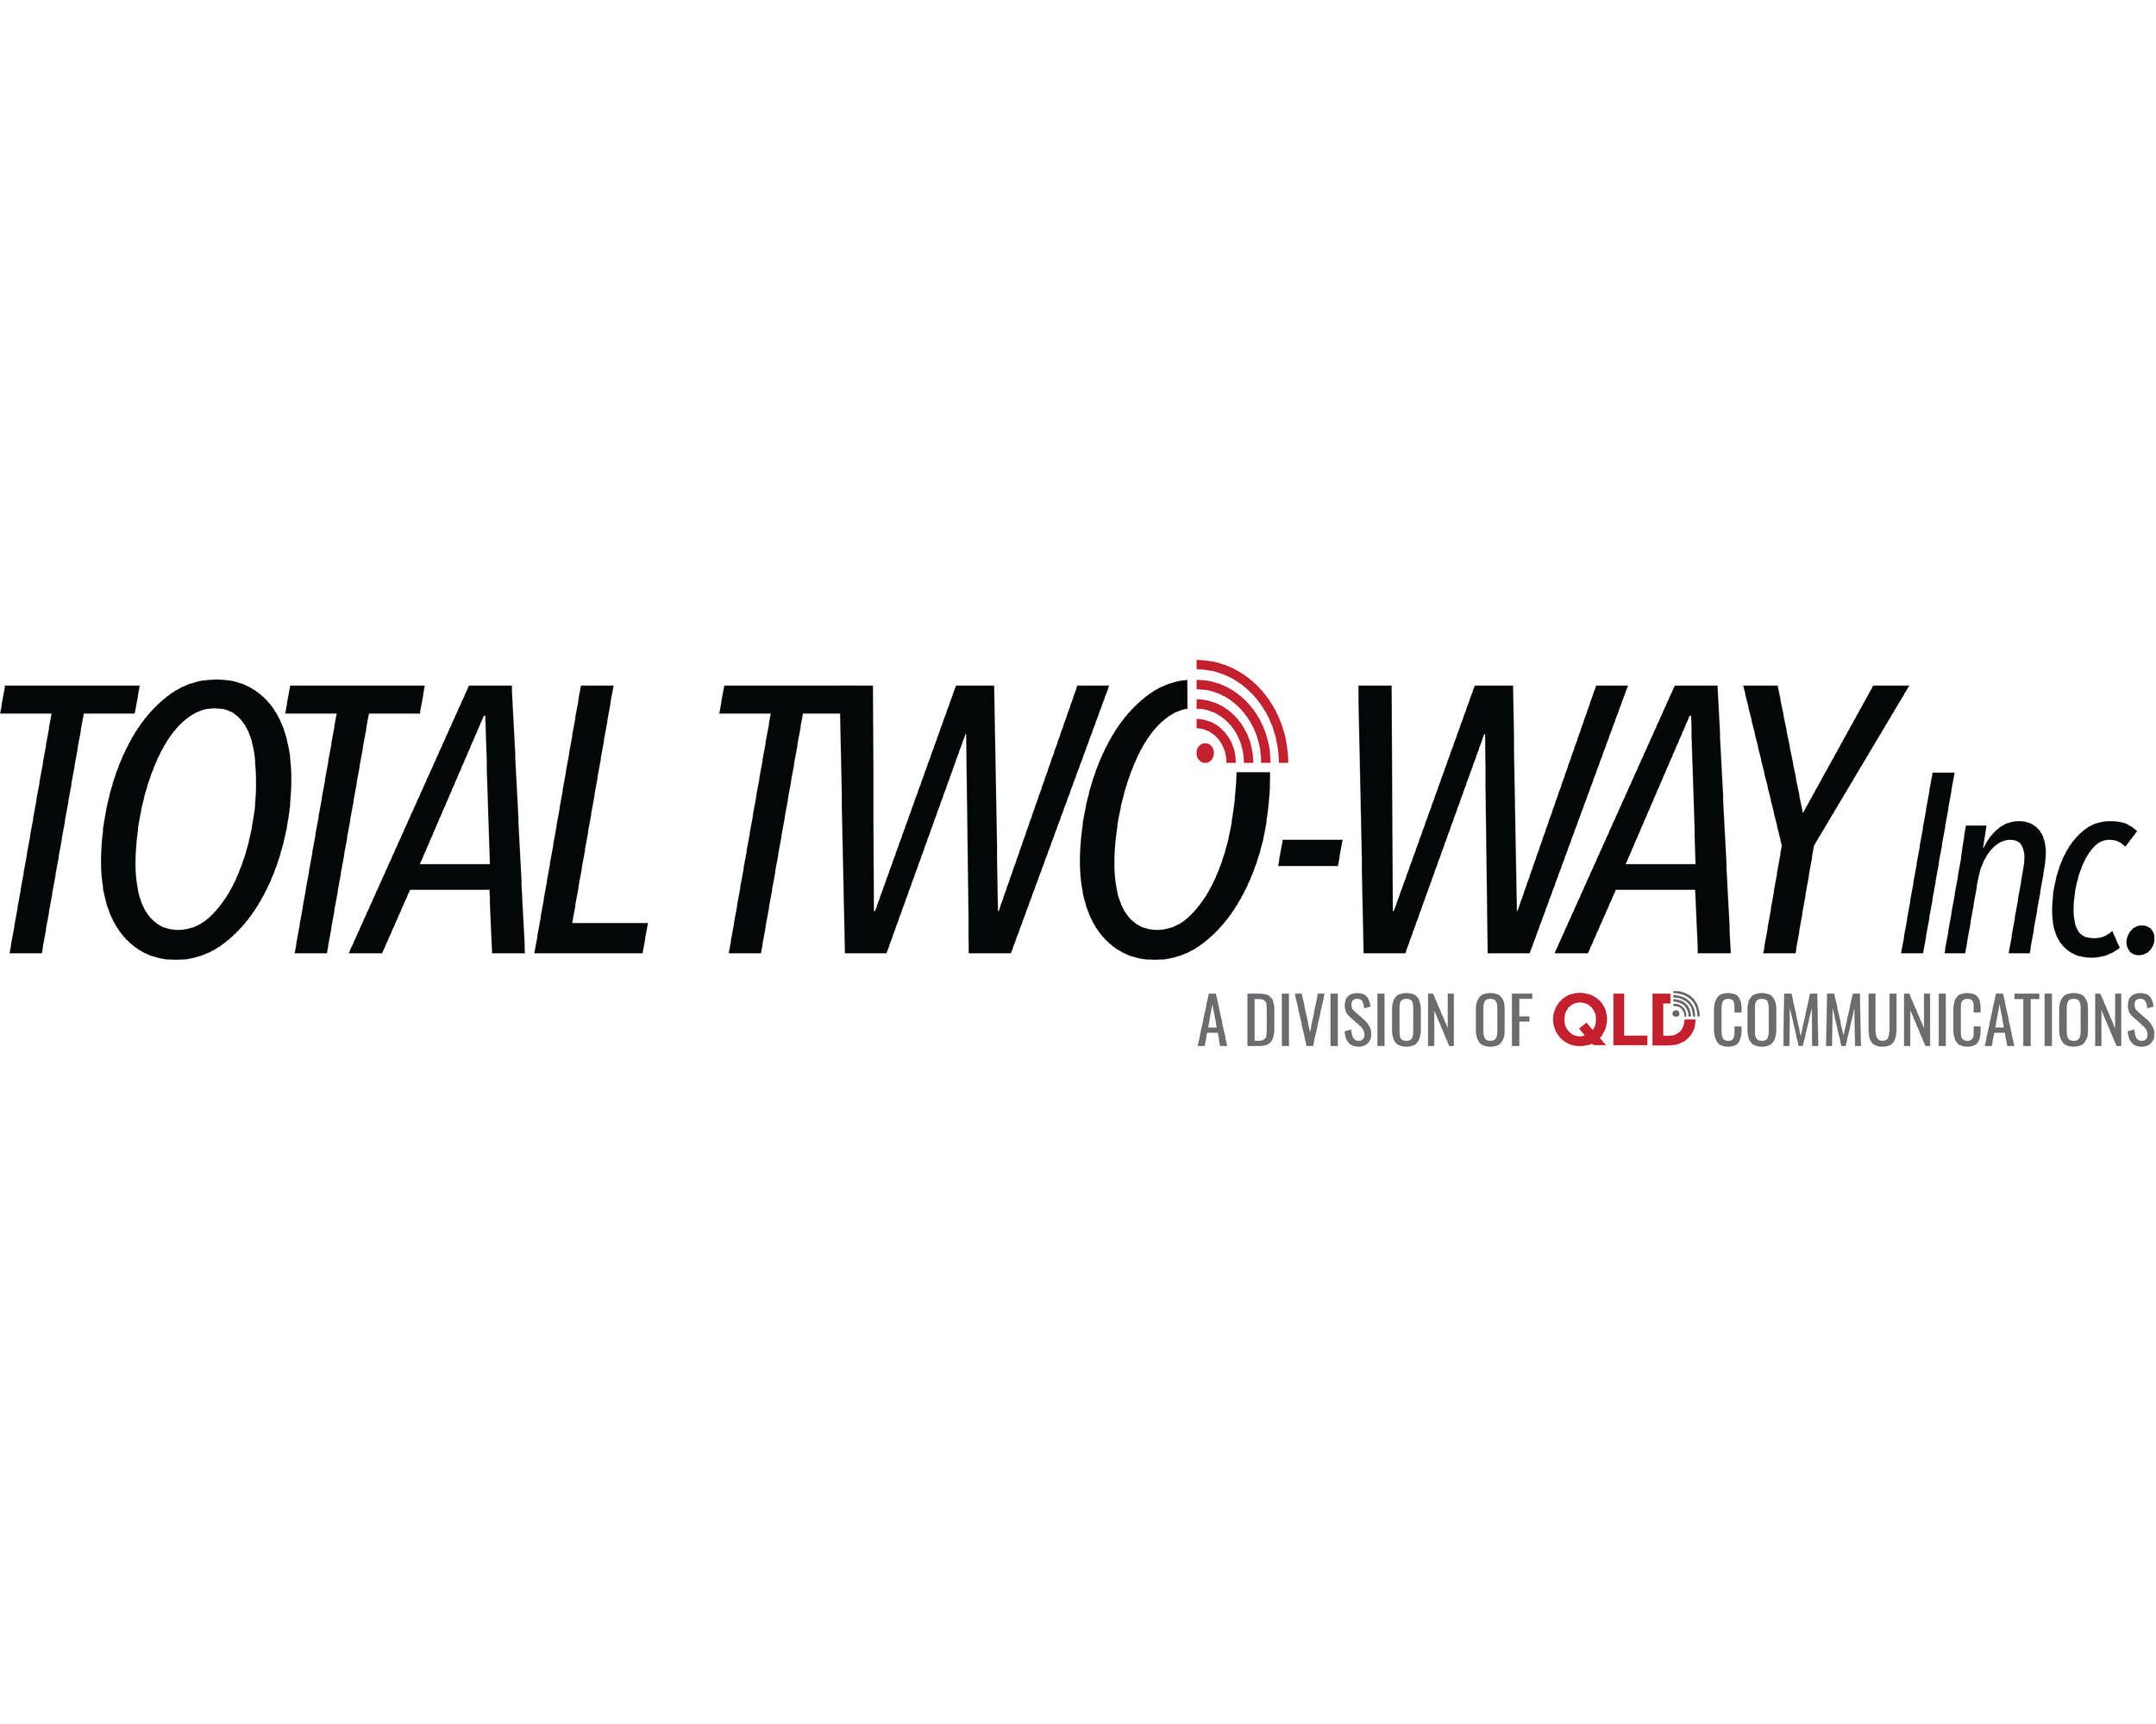 - Total Two-Way is the leader in providing portable two-way communication devices. With over 20 years of movie and film making experience, they provide the best service, and equipment for all communications needs.